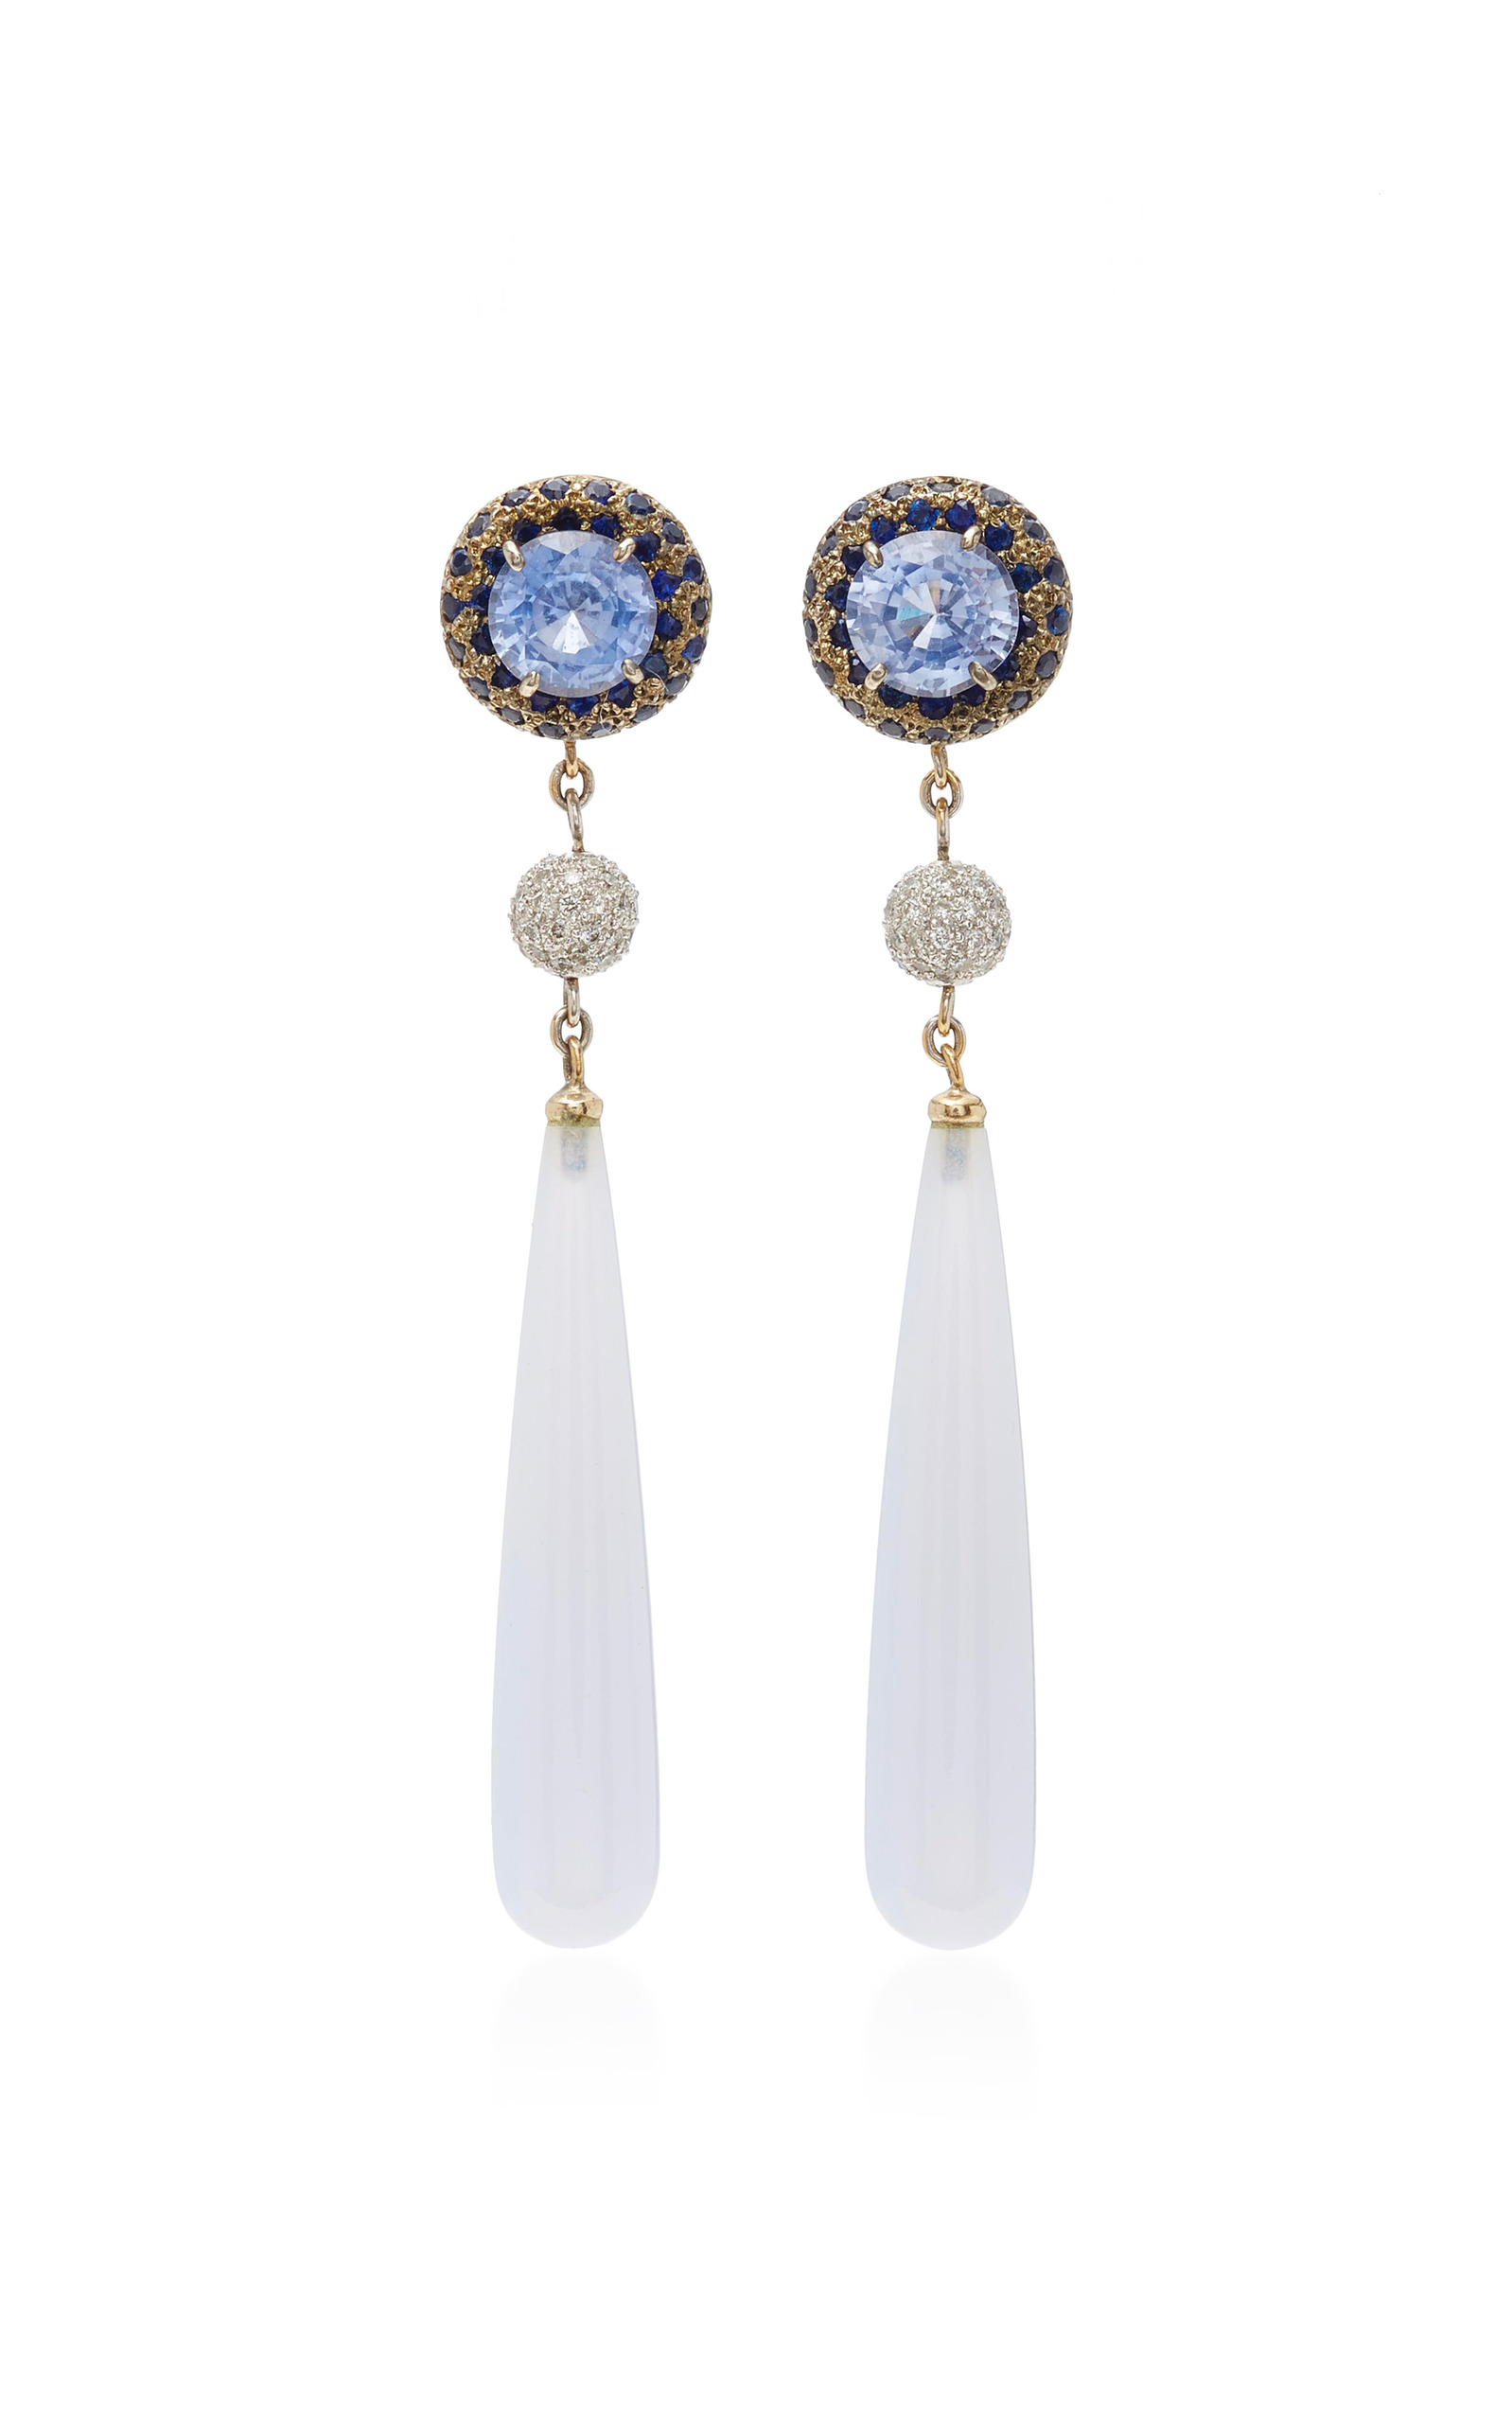 pave white earrings betteridge diamond p ball gold drop pav